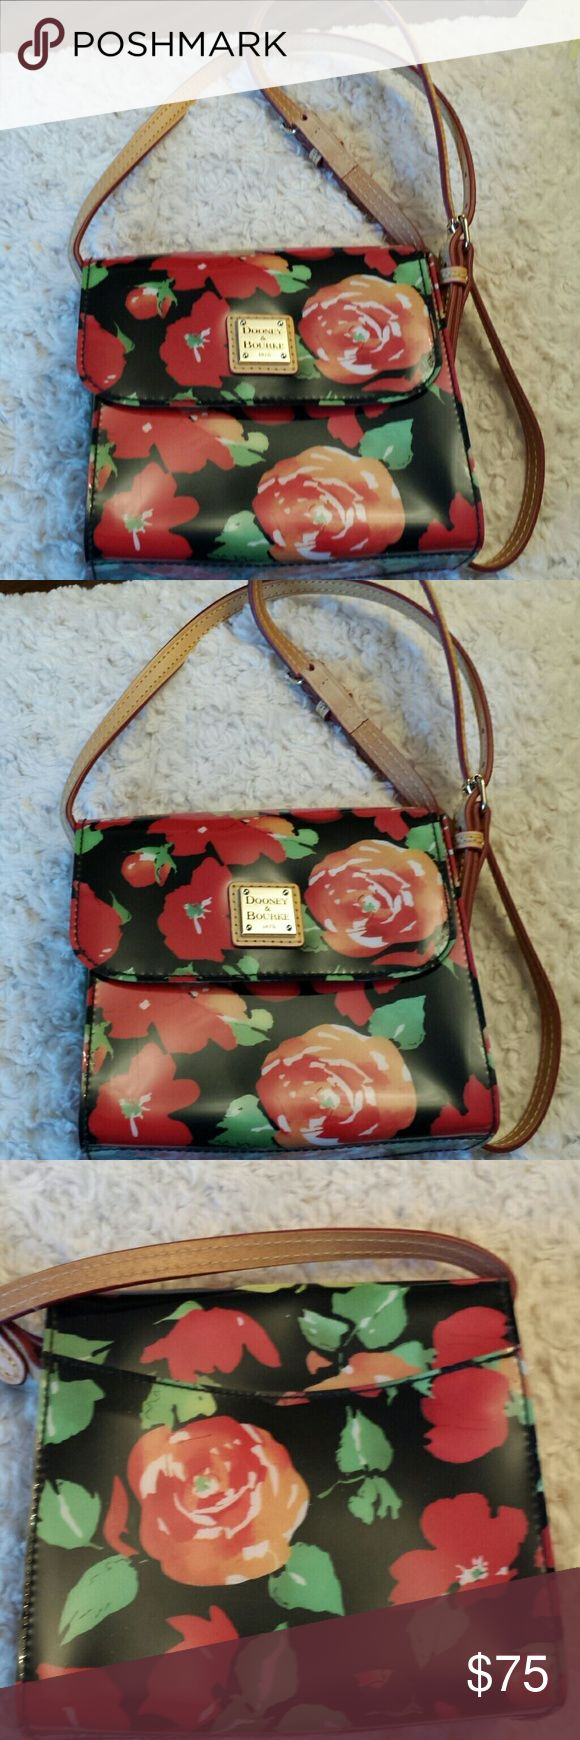 Dooney and Bourke Red Rose Garden Letter Bag RARE Dooney and Bourke Red Rose Garden Letter Carrier Mini  Crossbody Bag, Leather Strap with PVC Material, Slip pocket inside, zip pocket inside, Snap closure, Good condition, Dooney label inside can't get a great pic due to the angle, These bags do not come with a charm/fob Dooney and Bourke  Bags Crossbody Bags